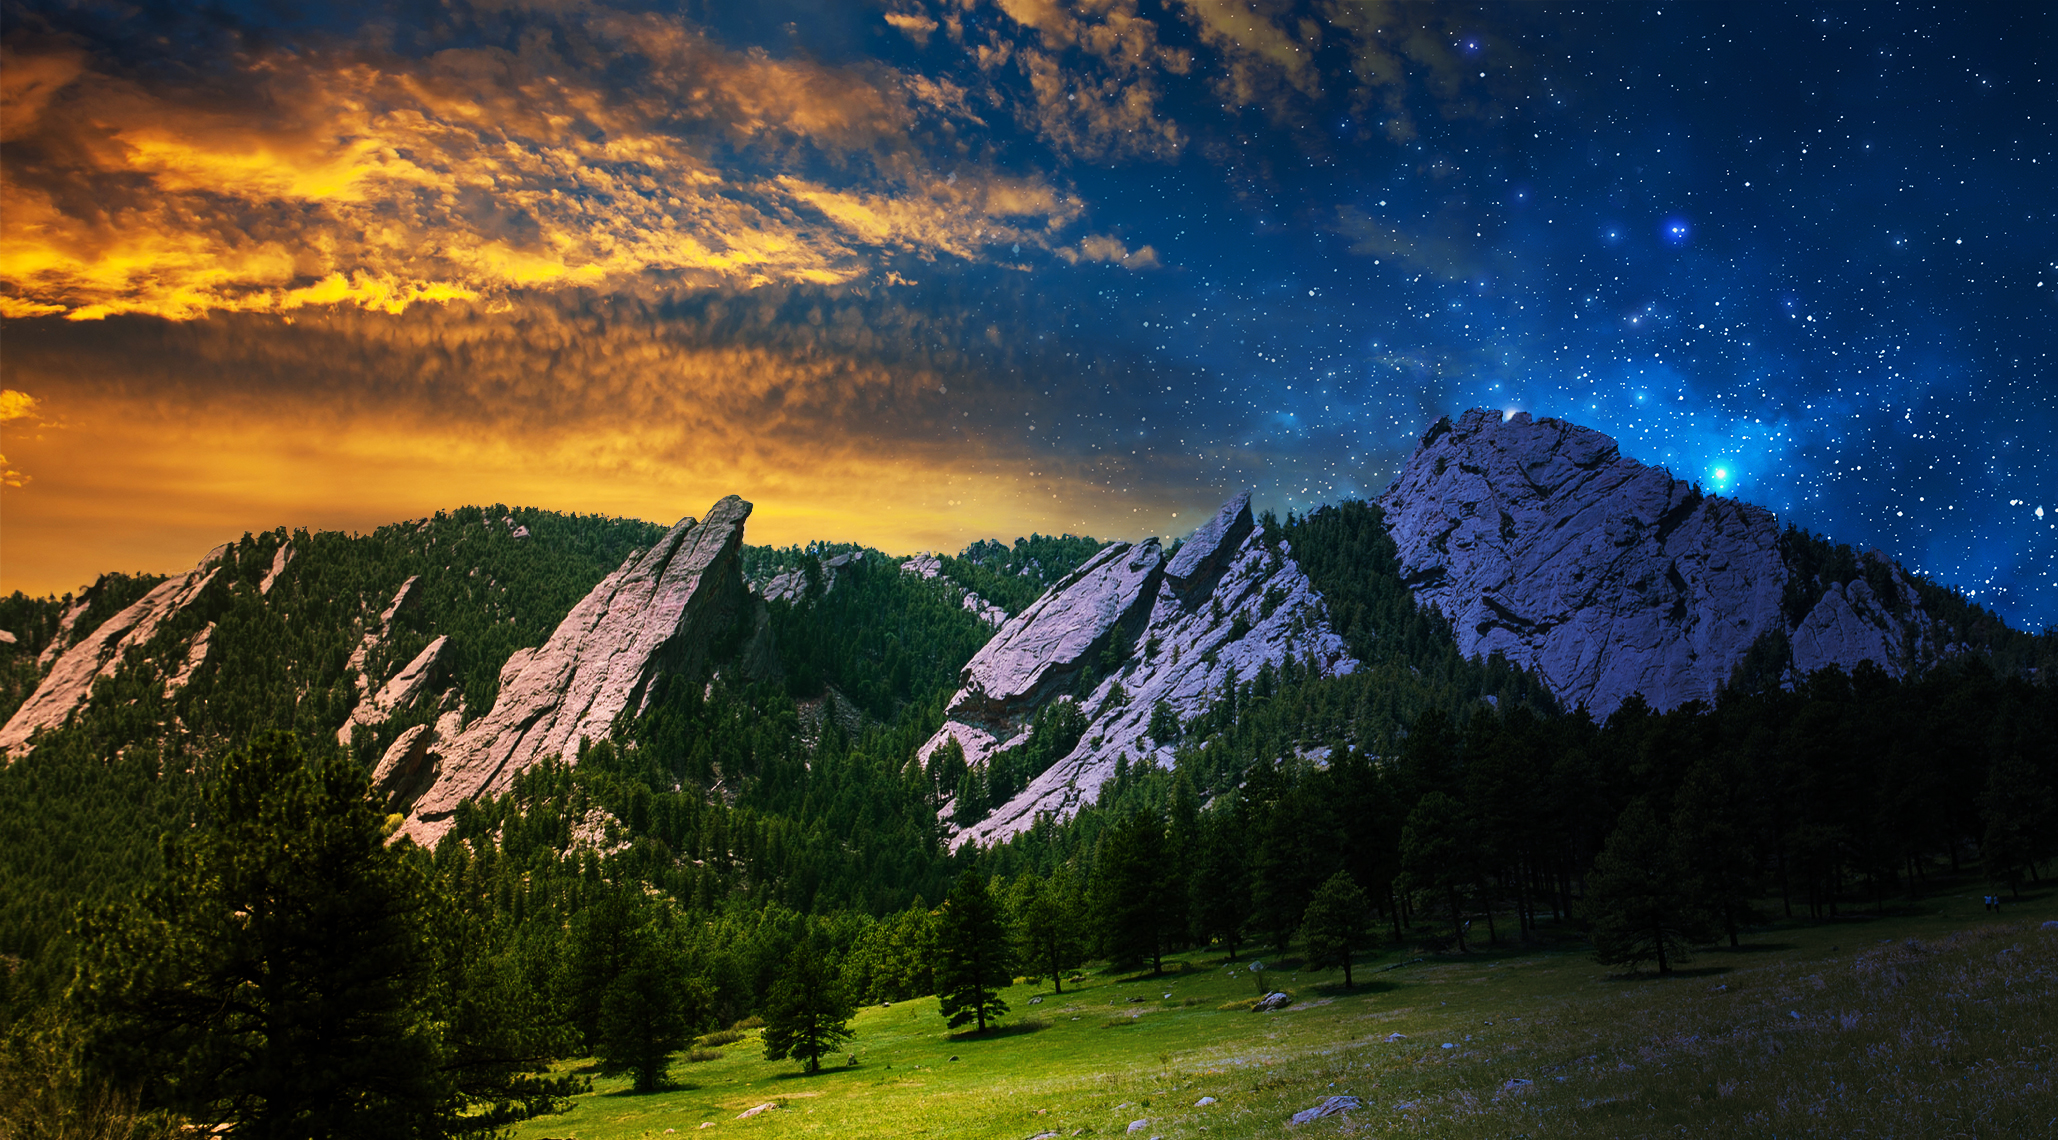 4k Fall Mountain Wallpaper Mystical Mountains Photo Composition In Photoshop